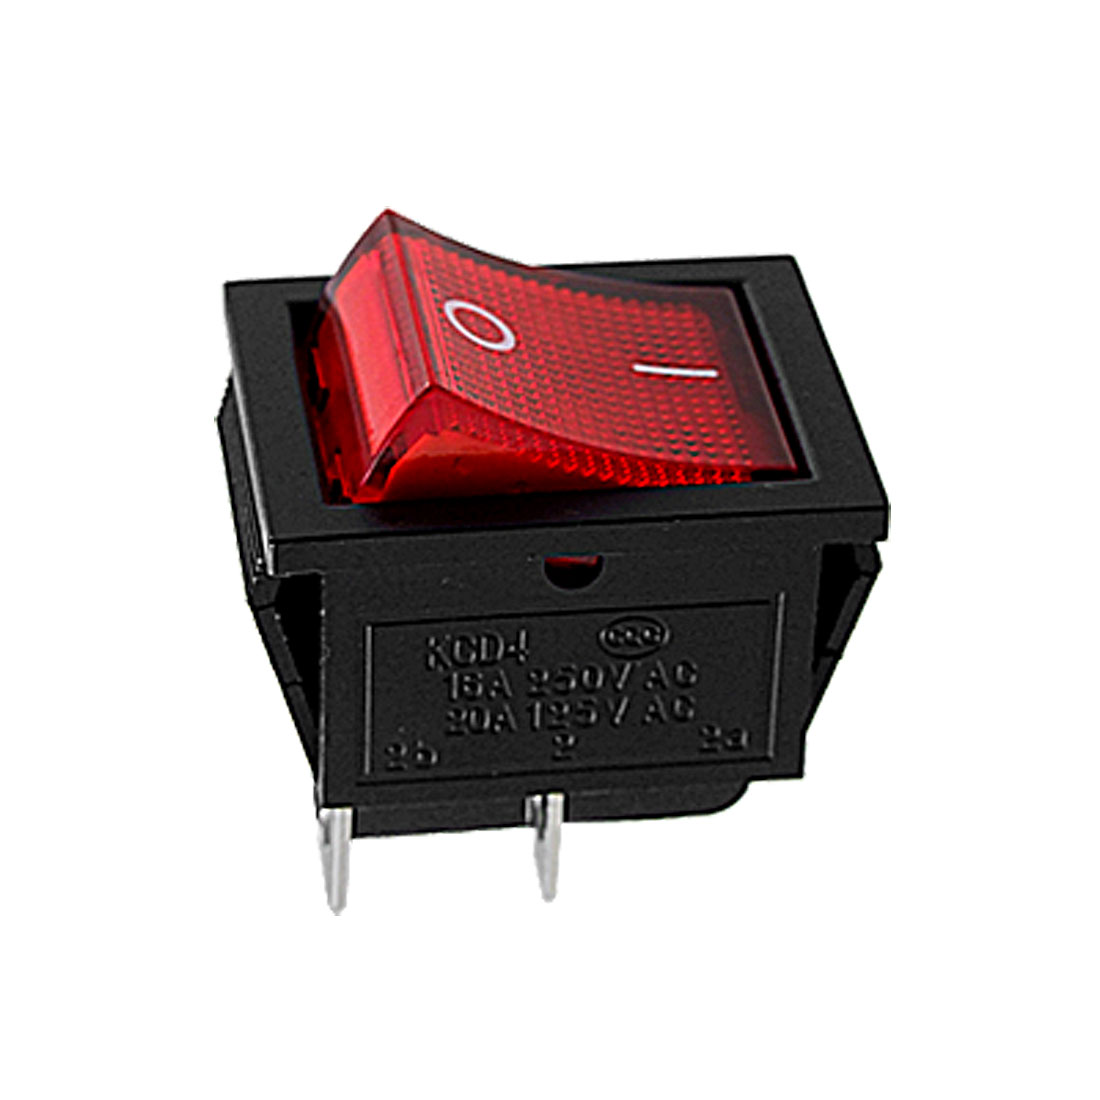 Red Light DPST ON/OFF Snap in Boat Rocker Switch 15A/250V 20A/125V AC 29x21mm